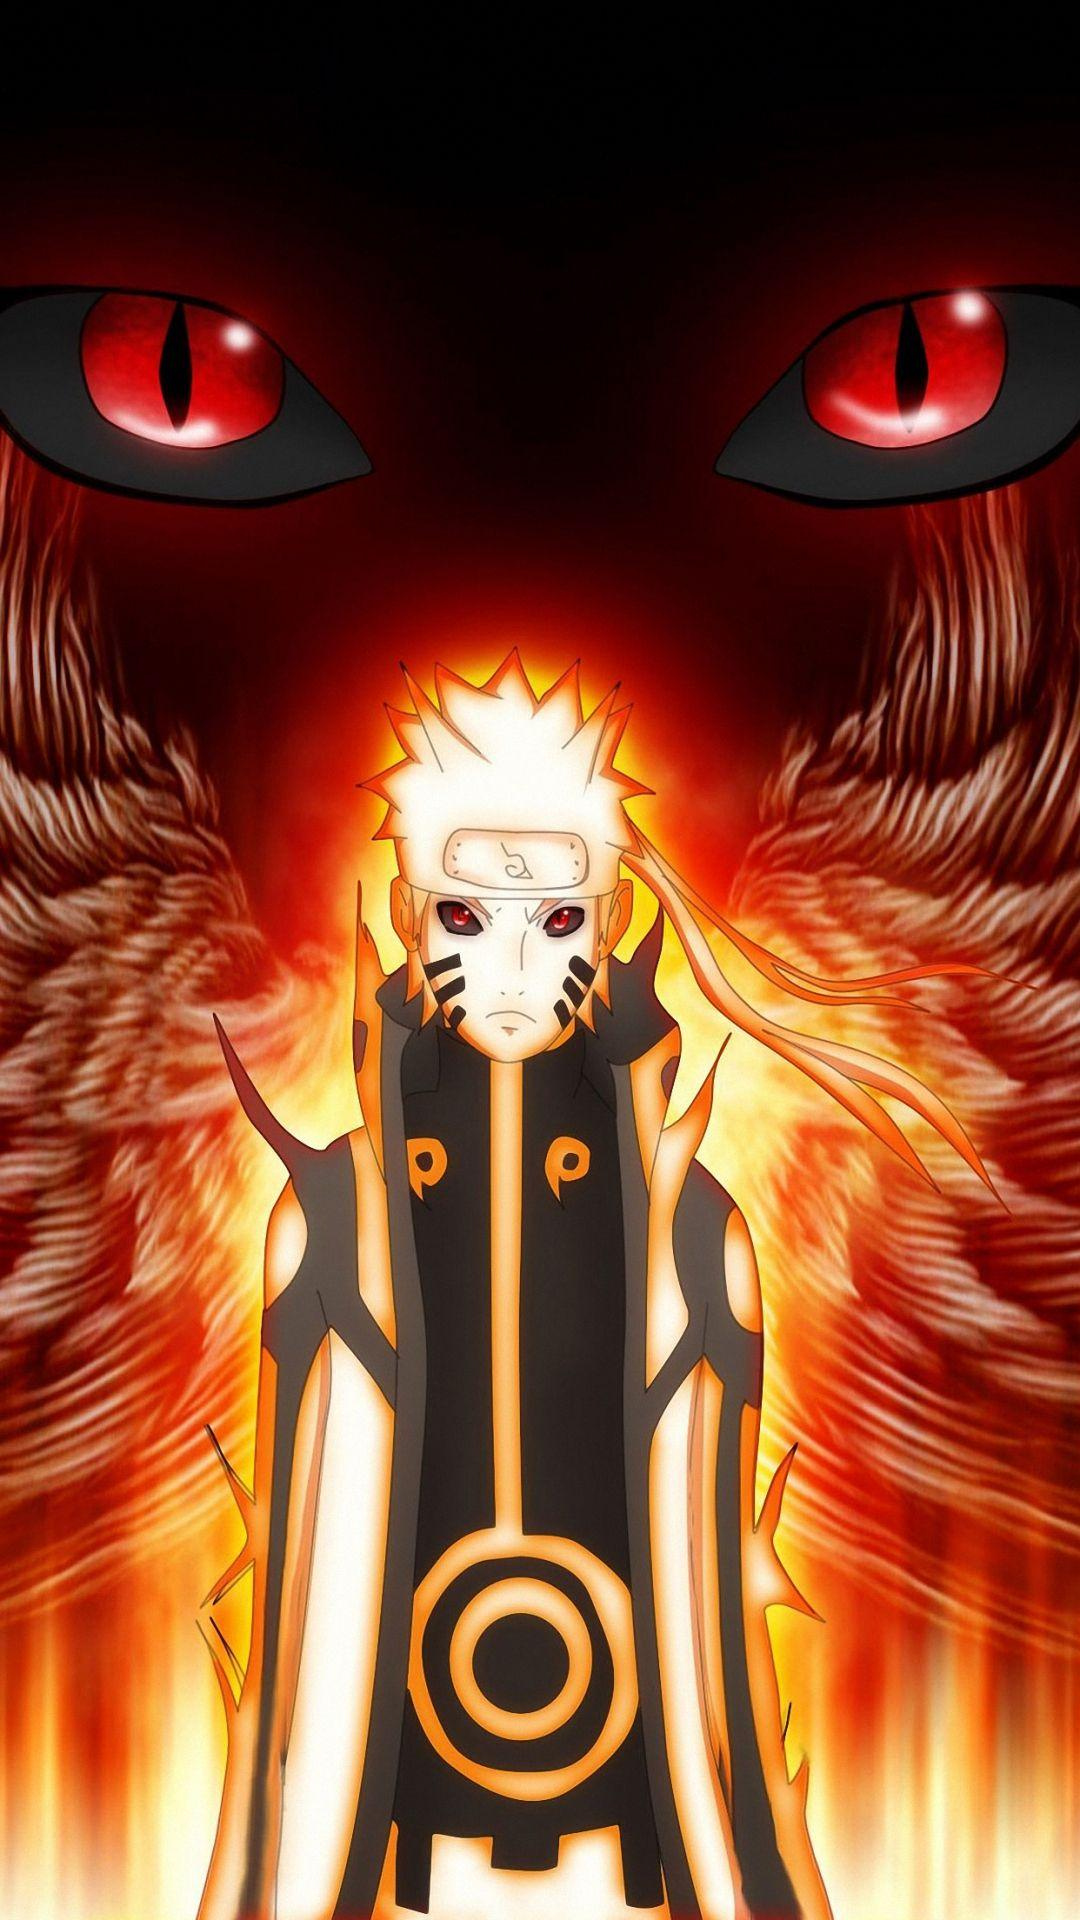 Wallpapers Naruto Uzumaki Iphone S Hd With For Samsung Image Of